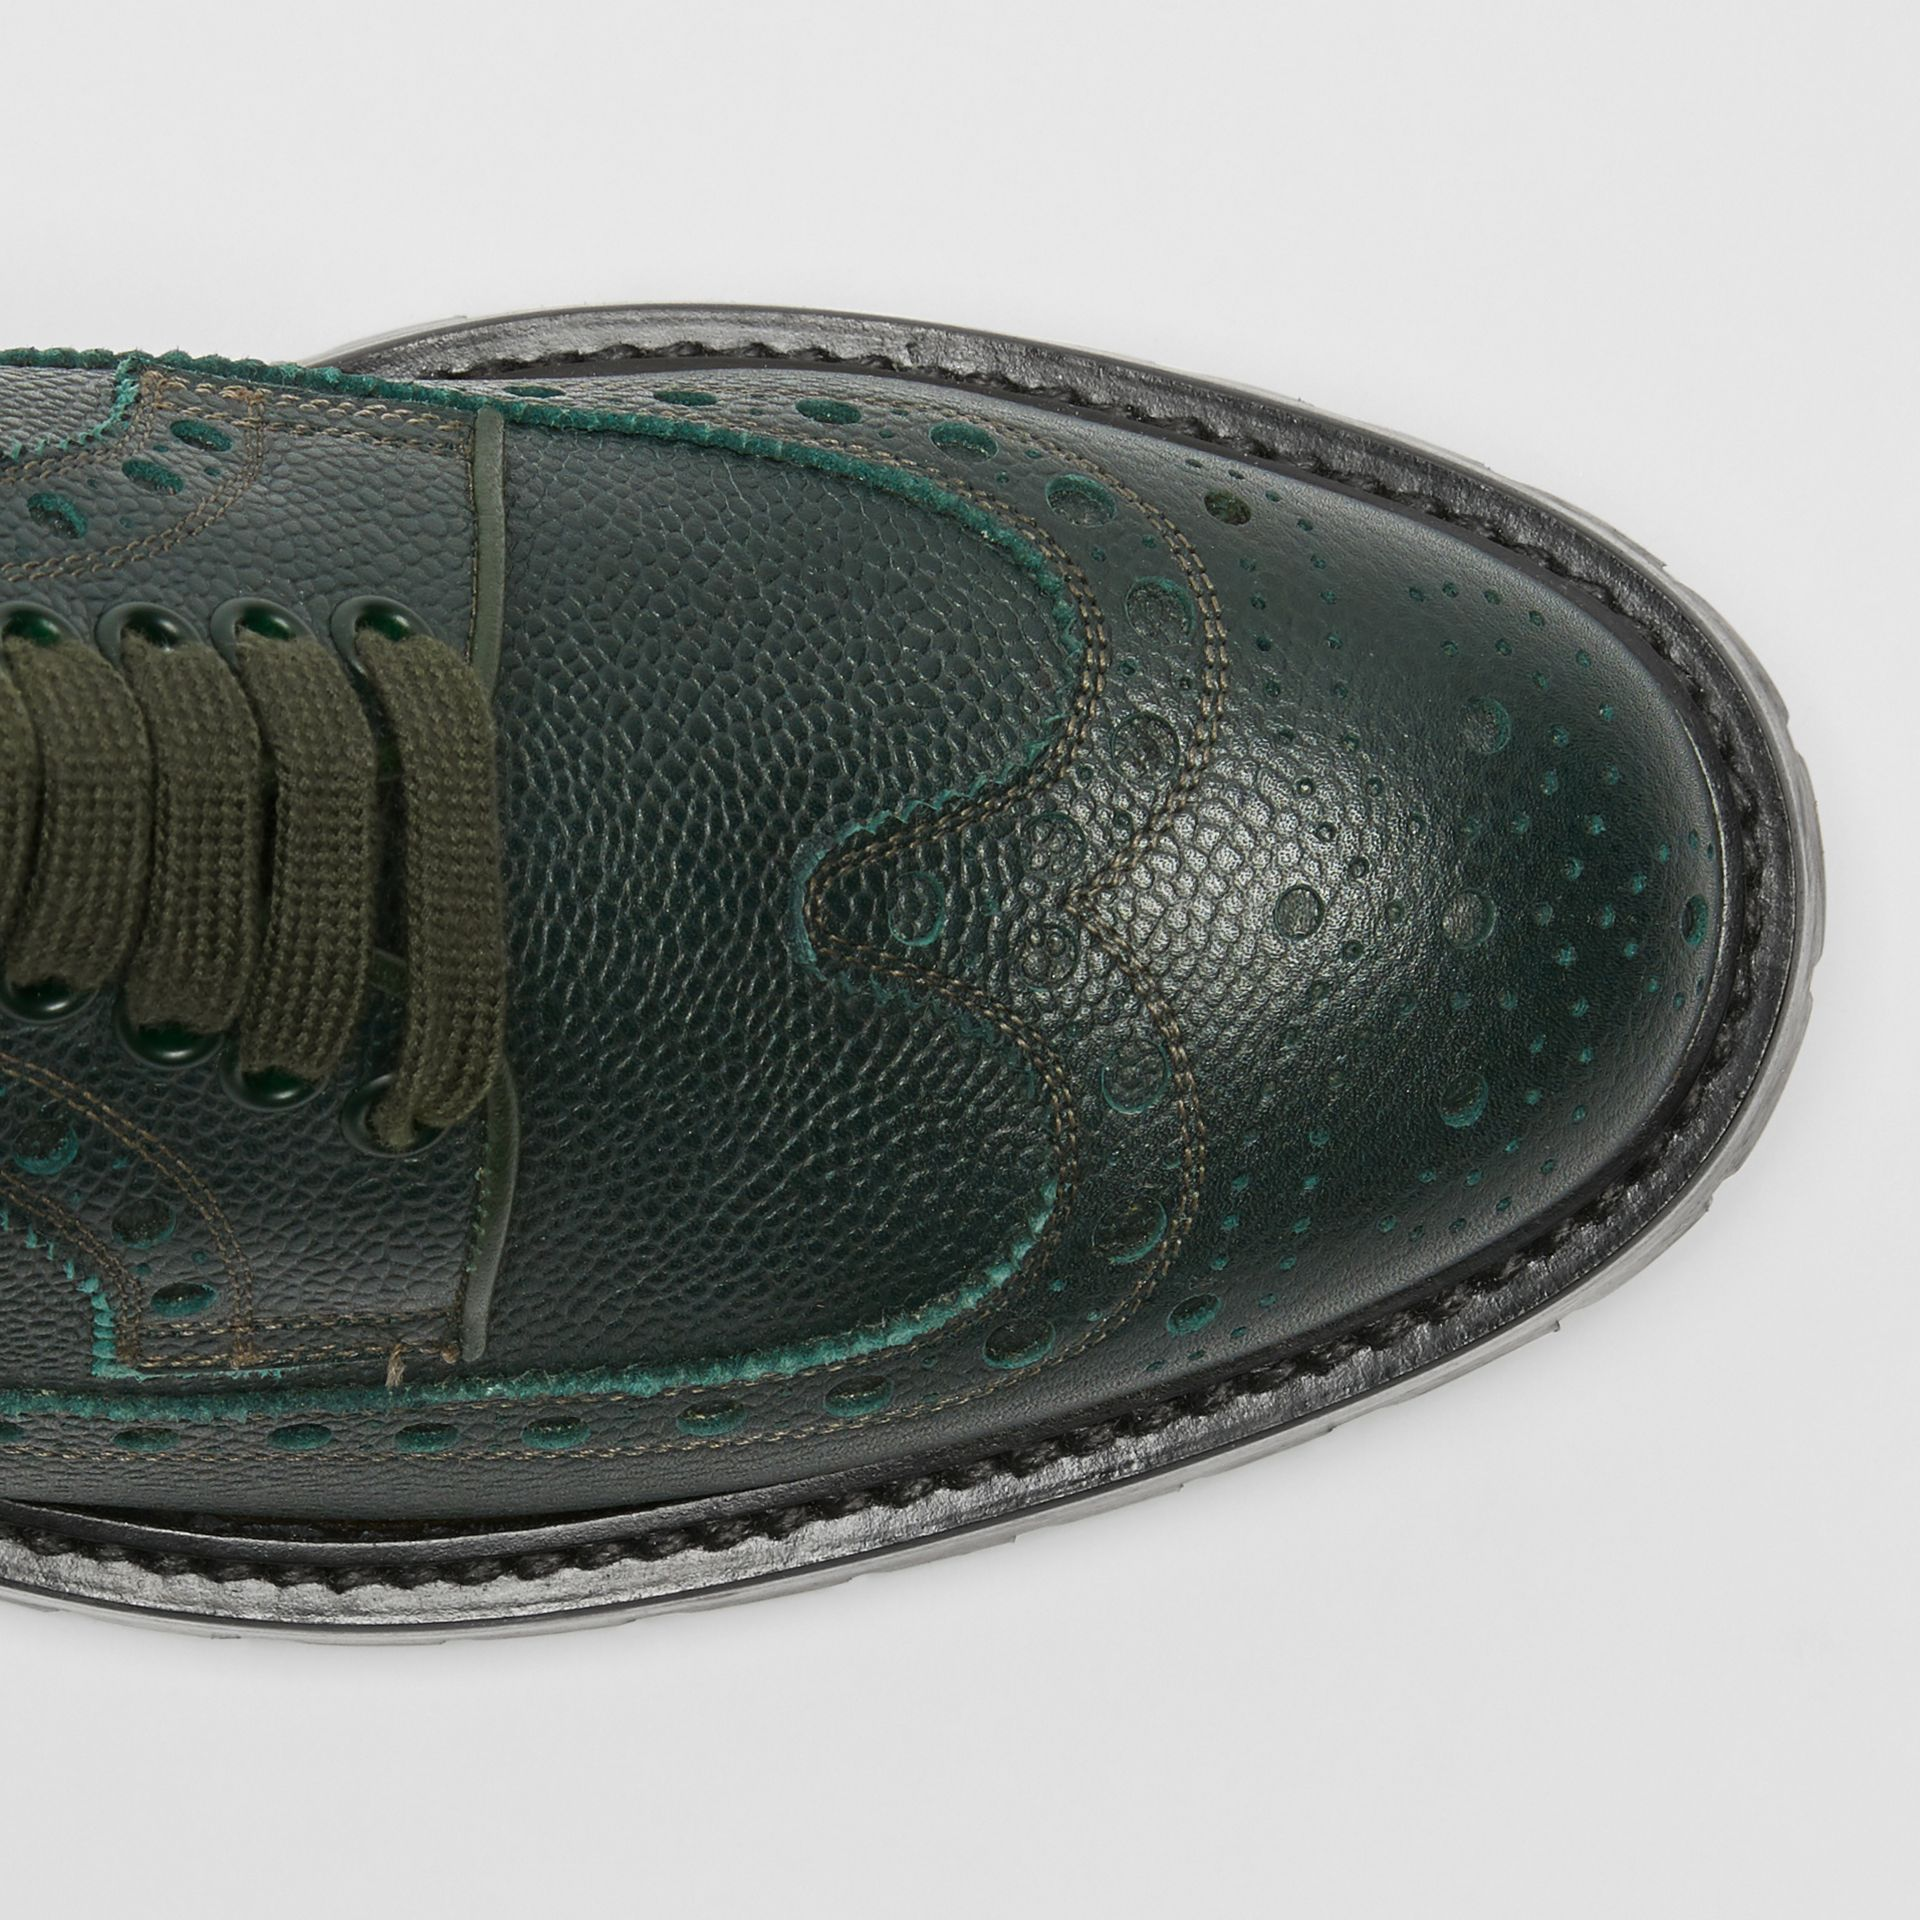 Brogue Detail Grainy Leather Derby Shoes in Deep Viridian Green - Men | Burberry Singapore - gallery image 1